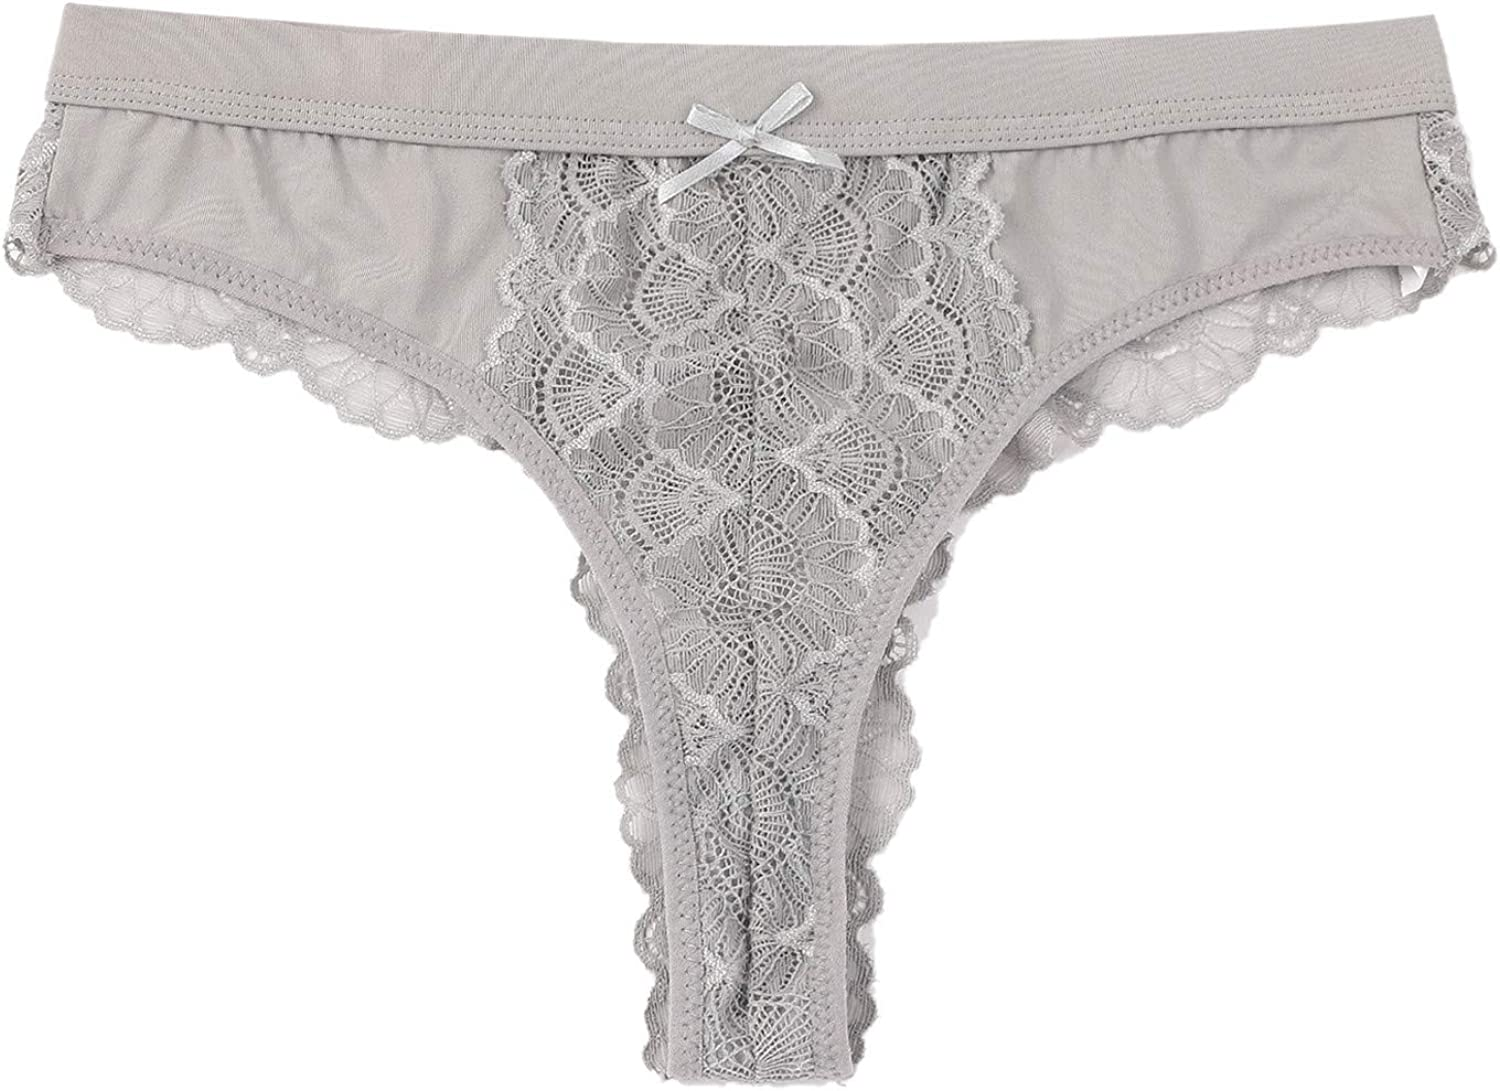 Women's Lace Bow Panties See-Through Breathable Thongs Briefs Lingerie Underwear Gifts for Women